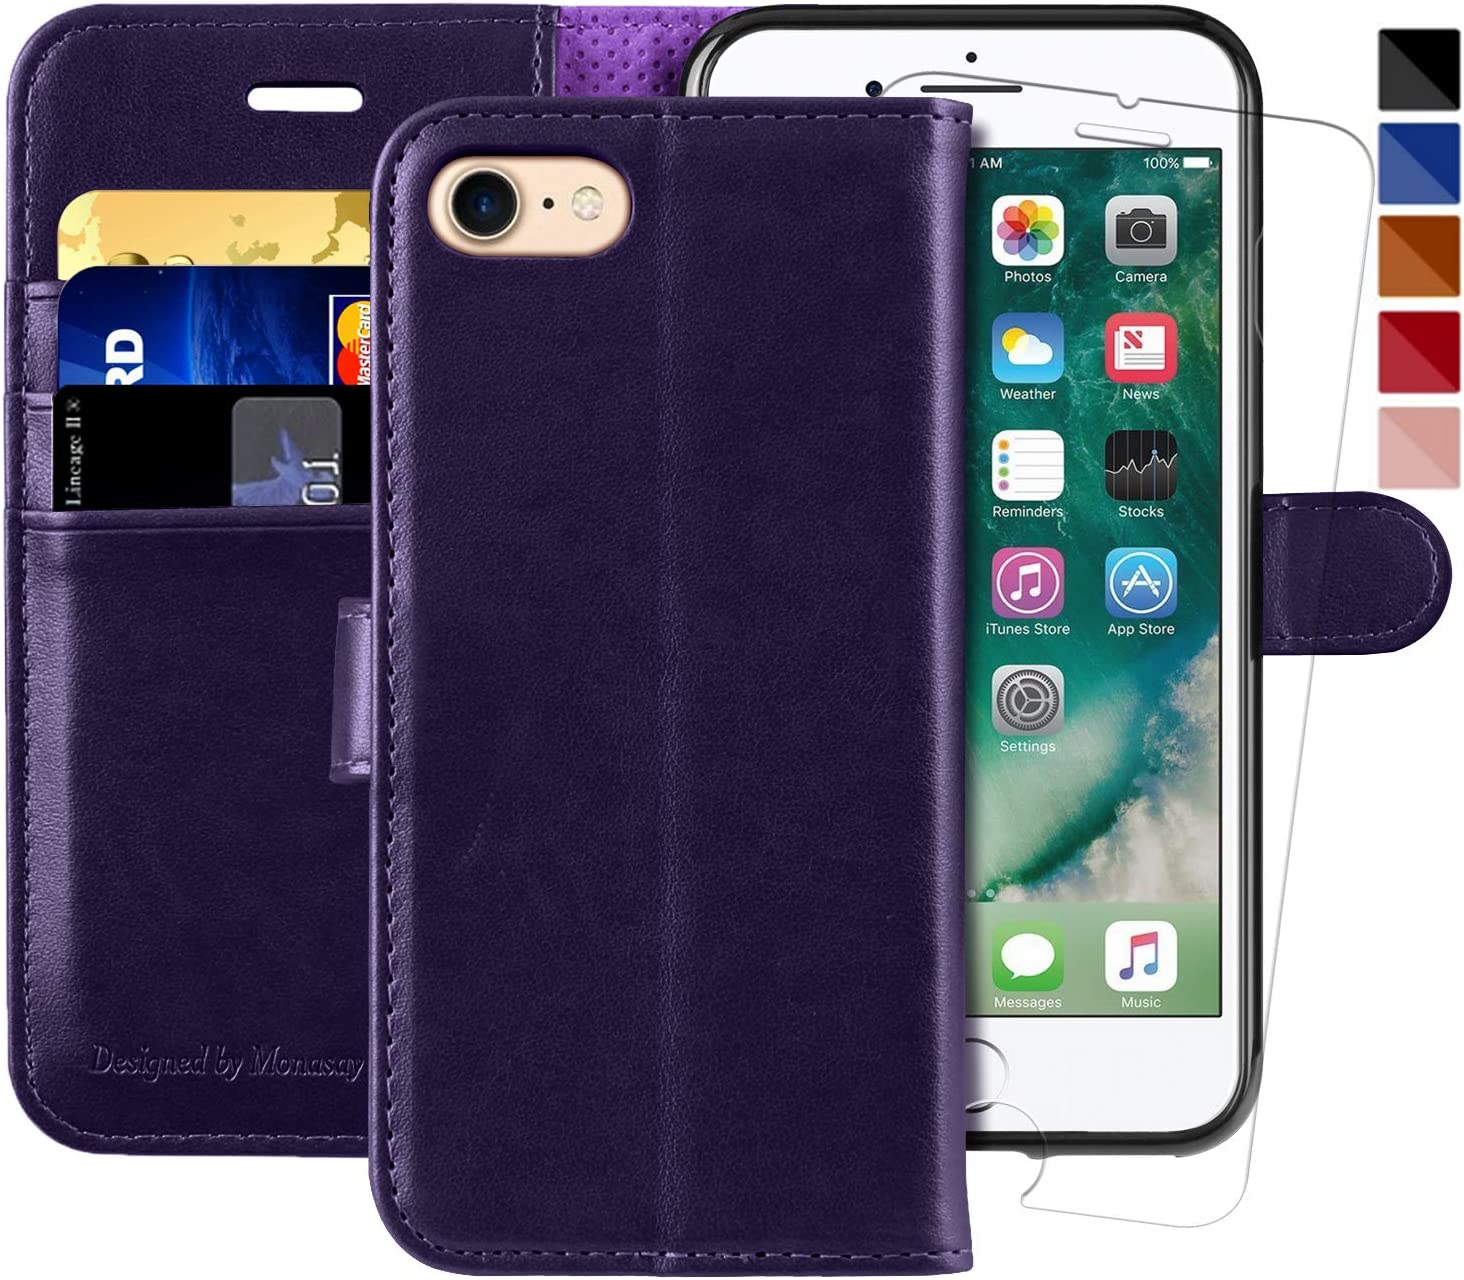 MONASAY iPhone 7 Wallet Case//iPhone 8 Wallet Case//iPhone SE 2020 Case,4.7-inch, Flip Folio Leather Cell Phone Cover with Credit Card Holder for Apple iPhone 7//8//SE2 Glass Screen Protector Included